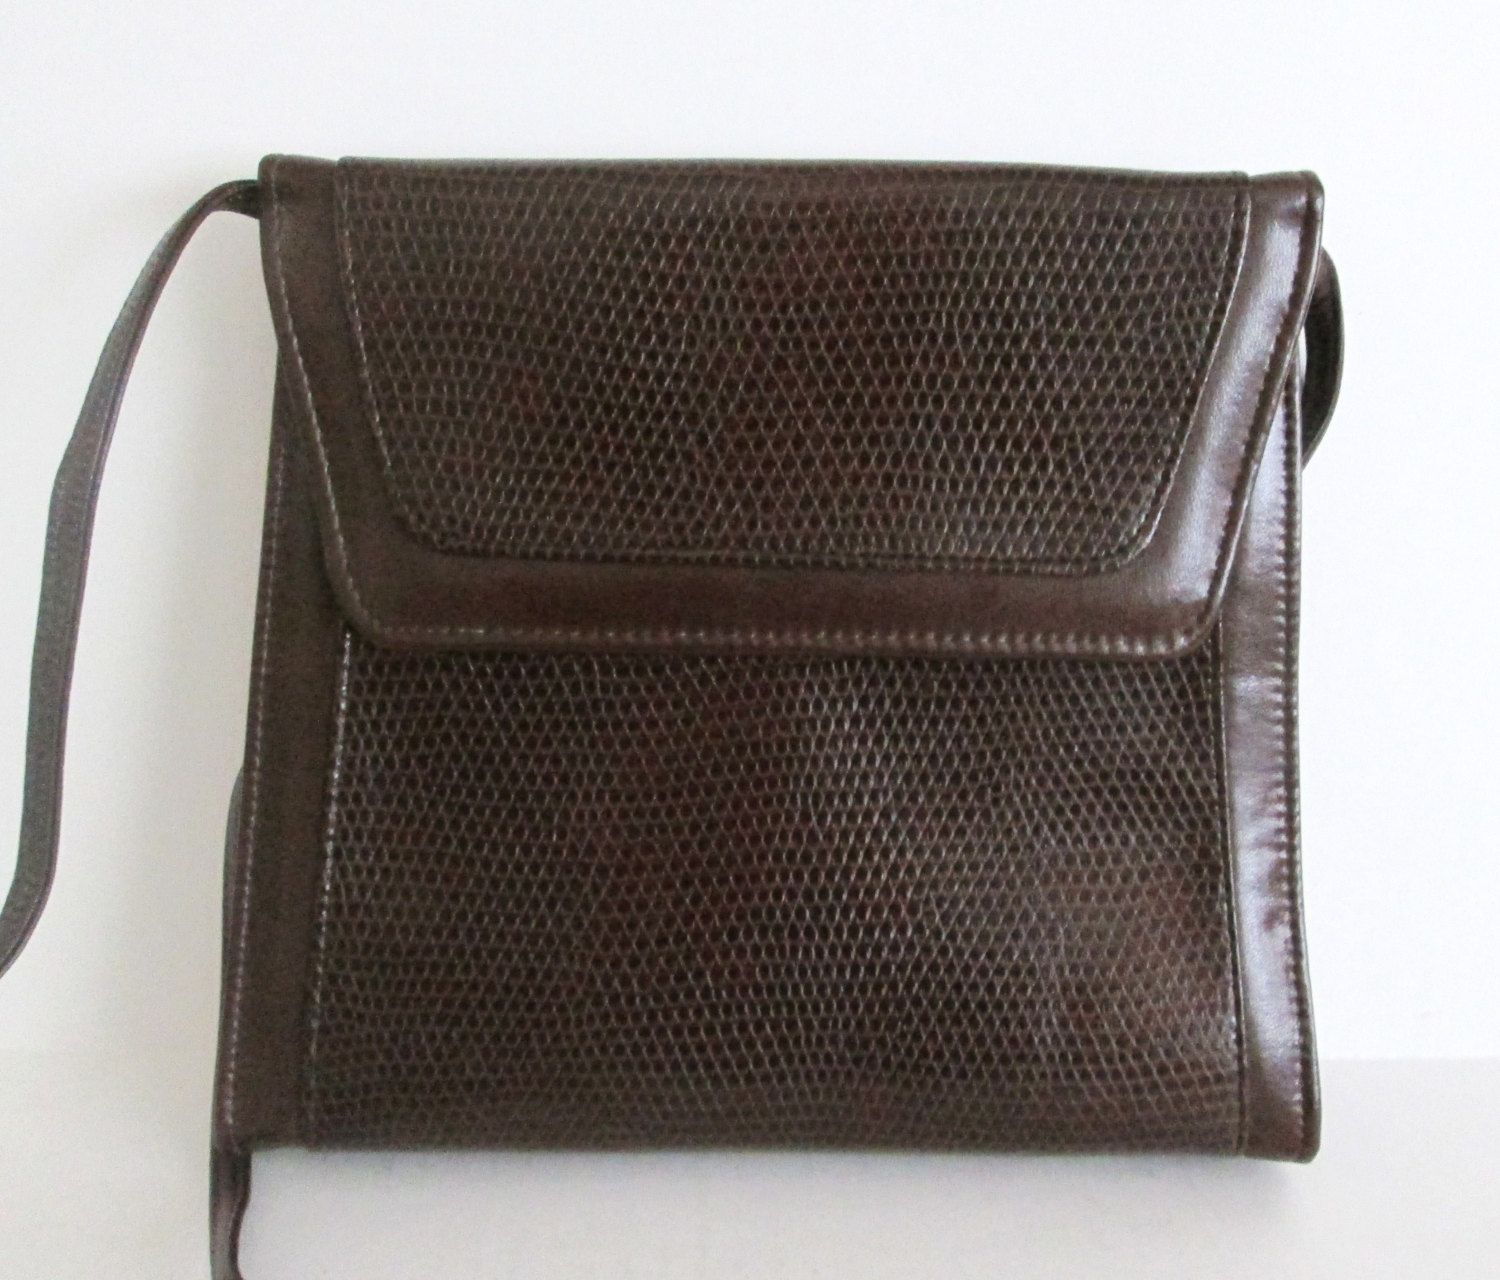 New Vintage 80s Brown Structured Purse Reptile Embossed